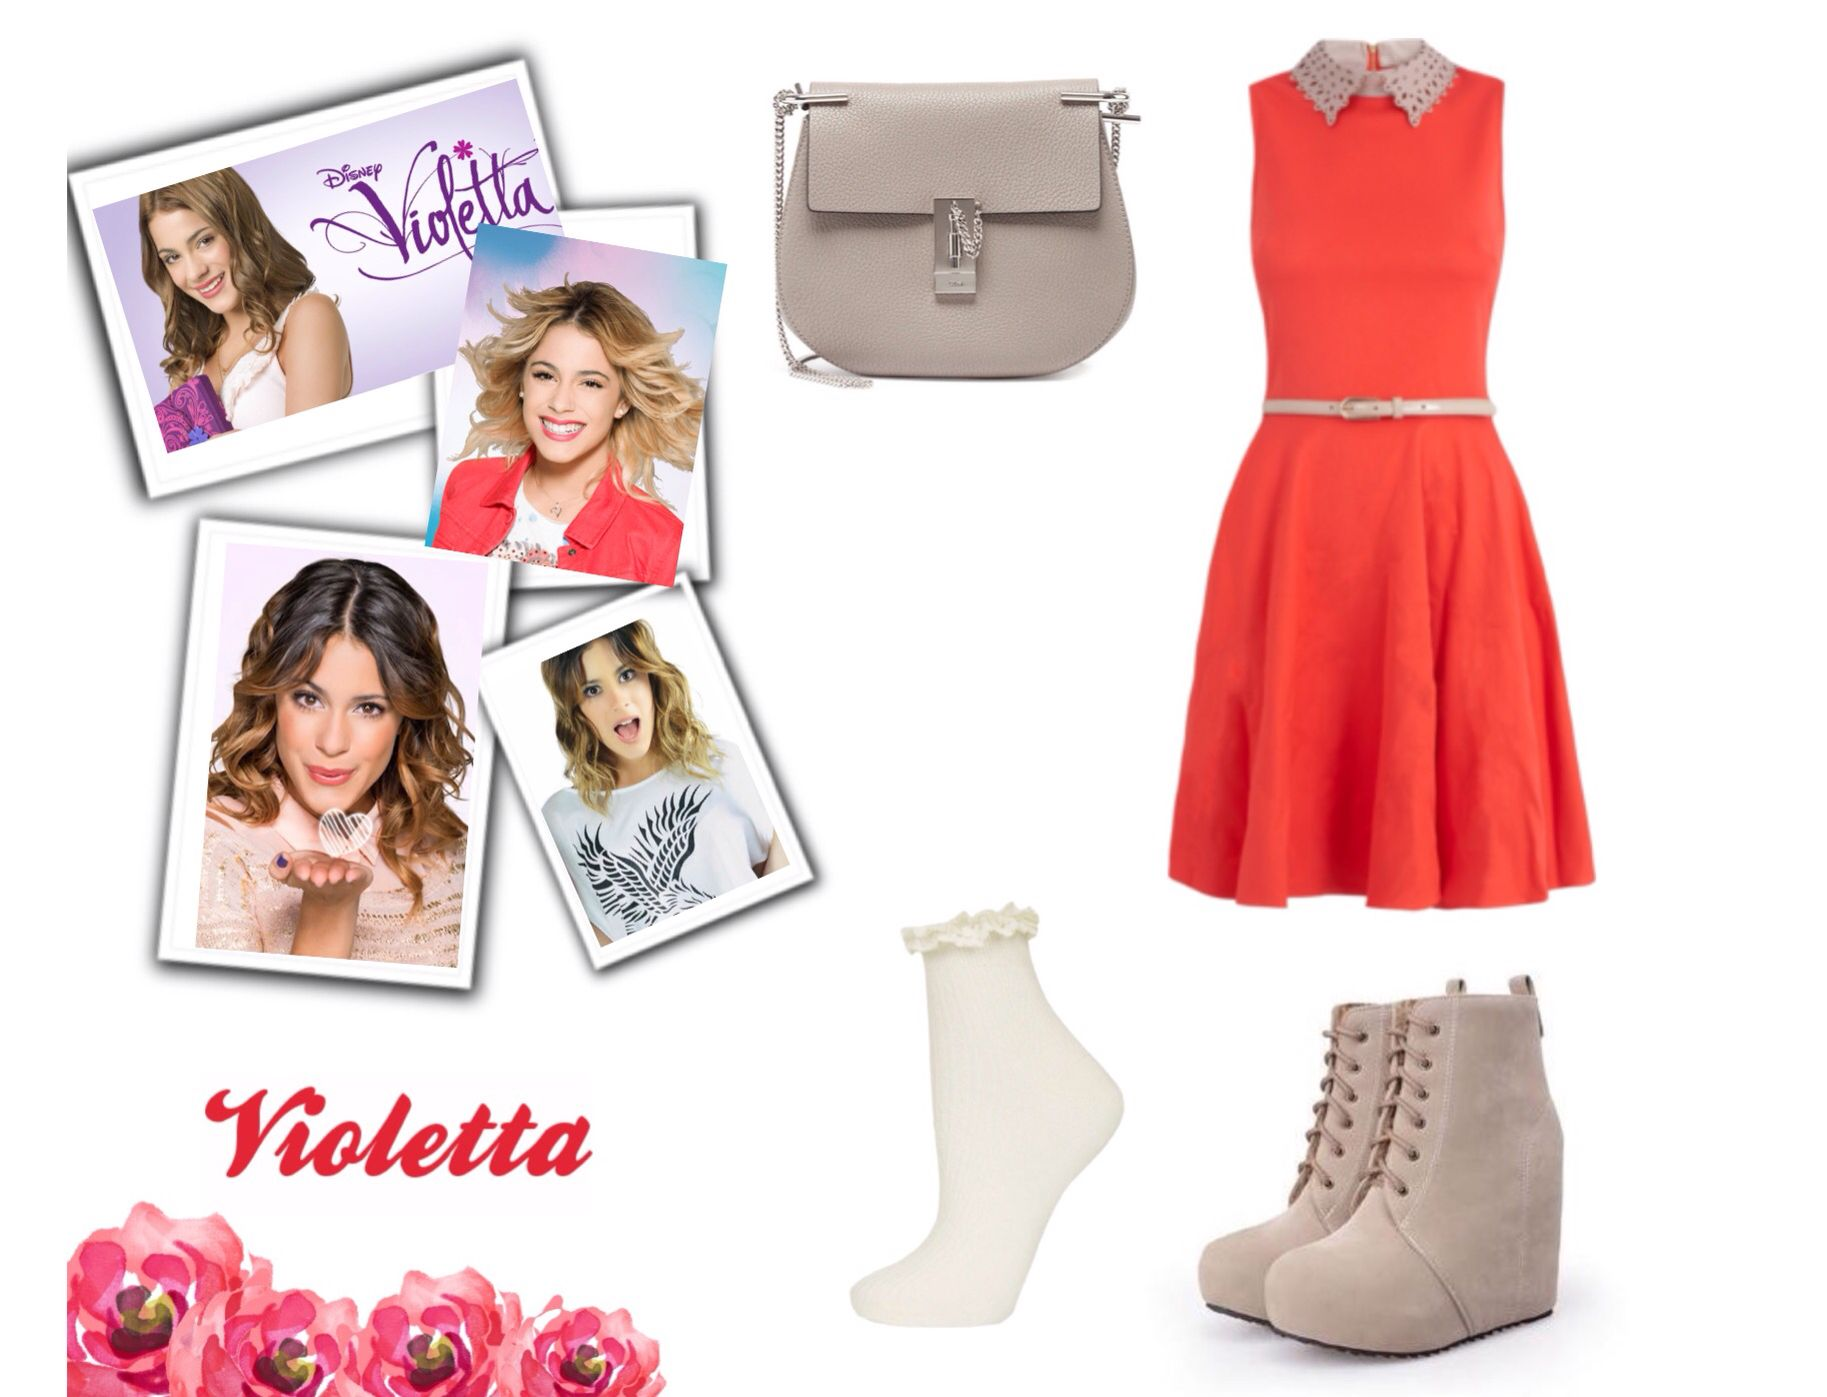 Tenue 4 Violetta Violetta Pinterest Clothes Teen Girl Fashion And Curvy Girl Style